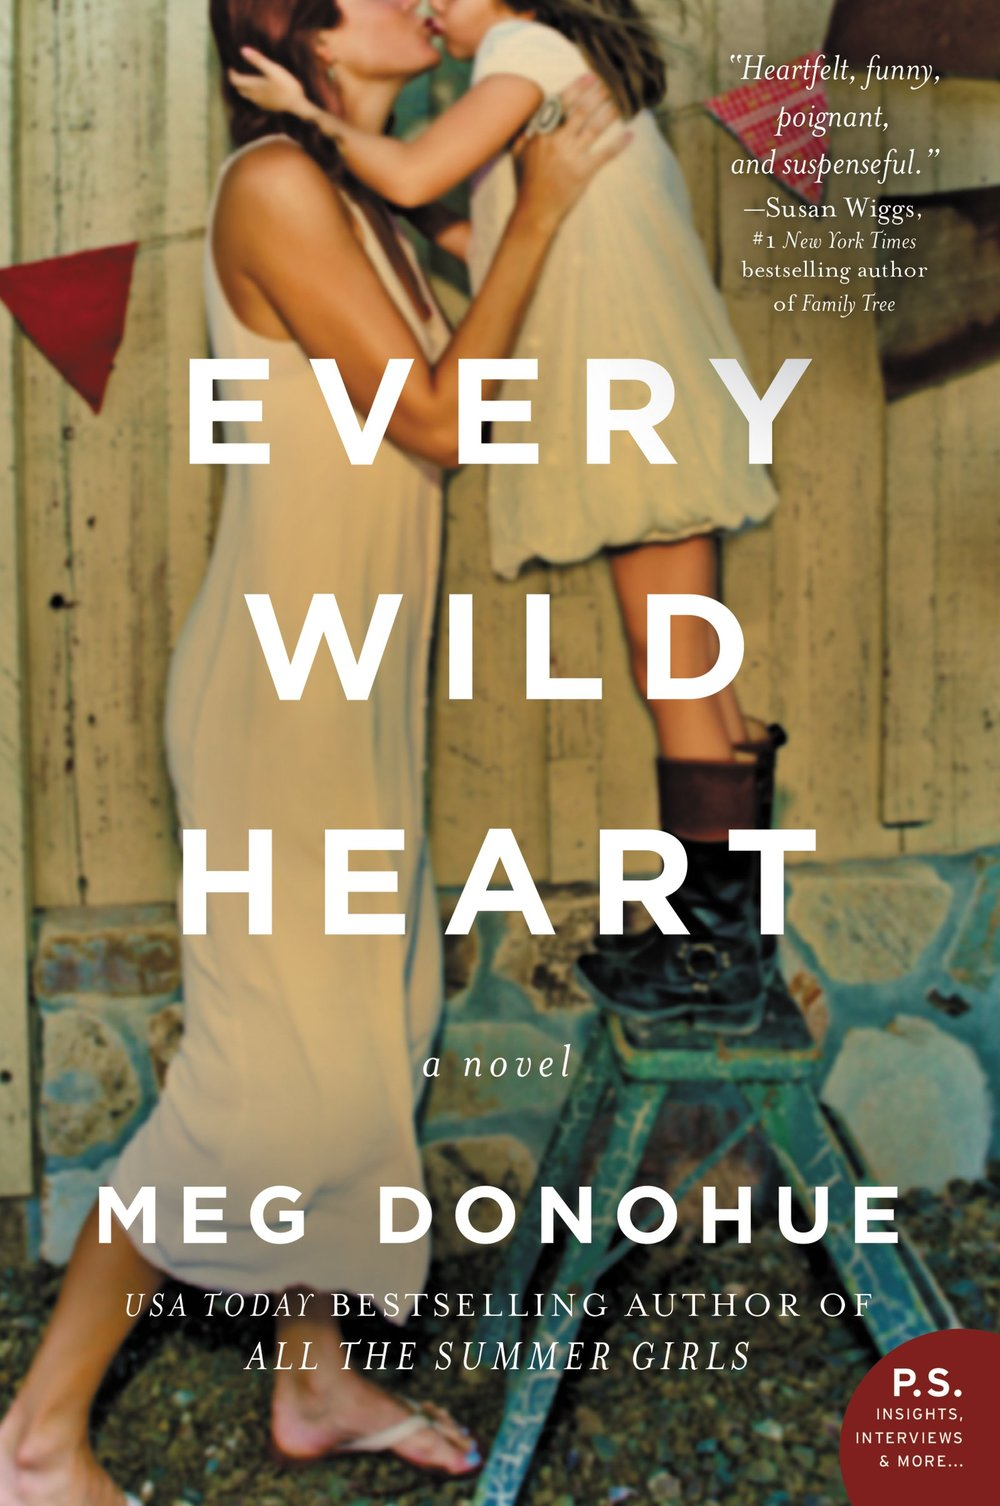 Every Wild Heart  by Meg Donohue  William Morrow --- March 14, 2017